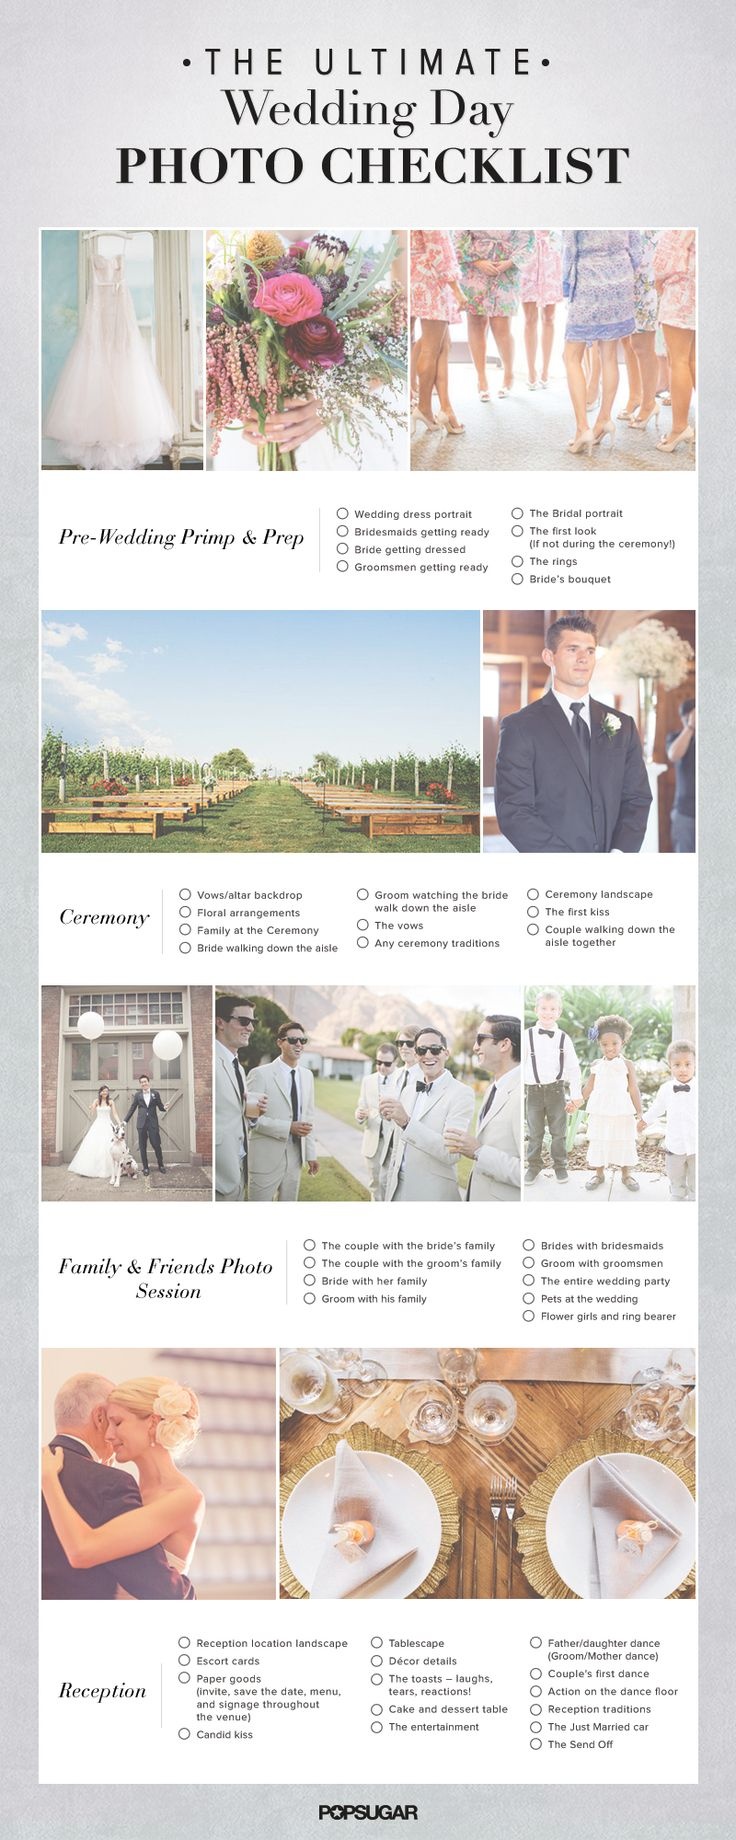 My advice - DEFINITELY make a list of photos that you want. The Ultimate Wedding Day Photo Checklist — hand this to your photographer!